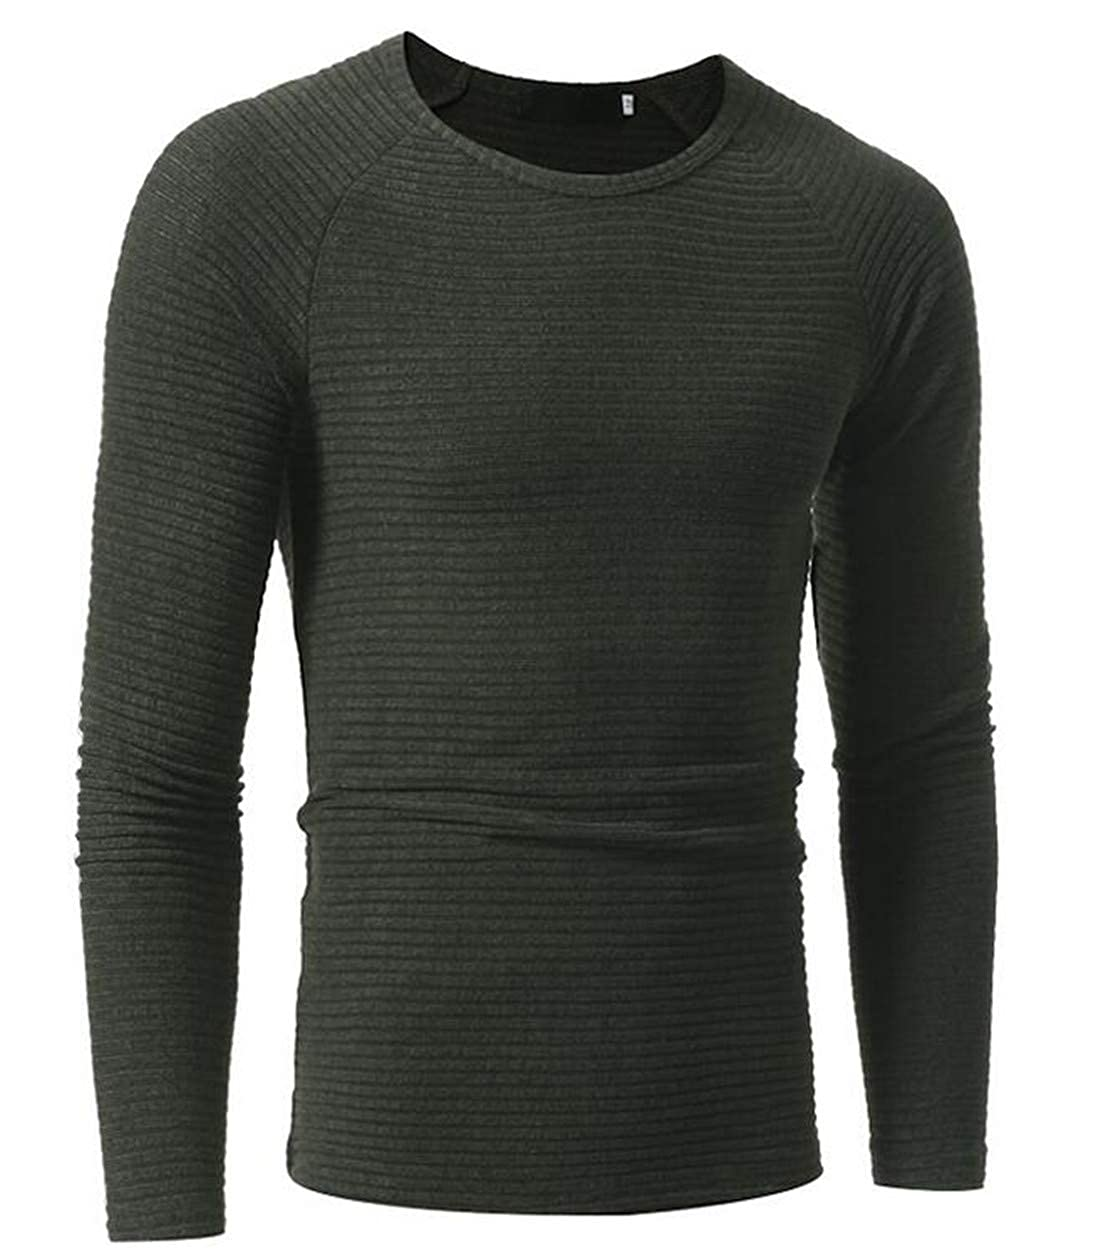 GRMO Men Ribbed Knitted Pullover Crewneck Solid Sweater Blouse Top